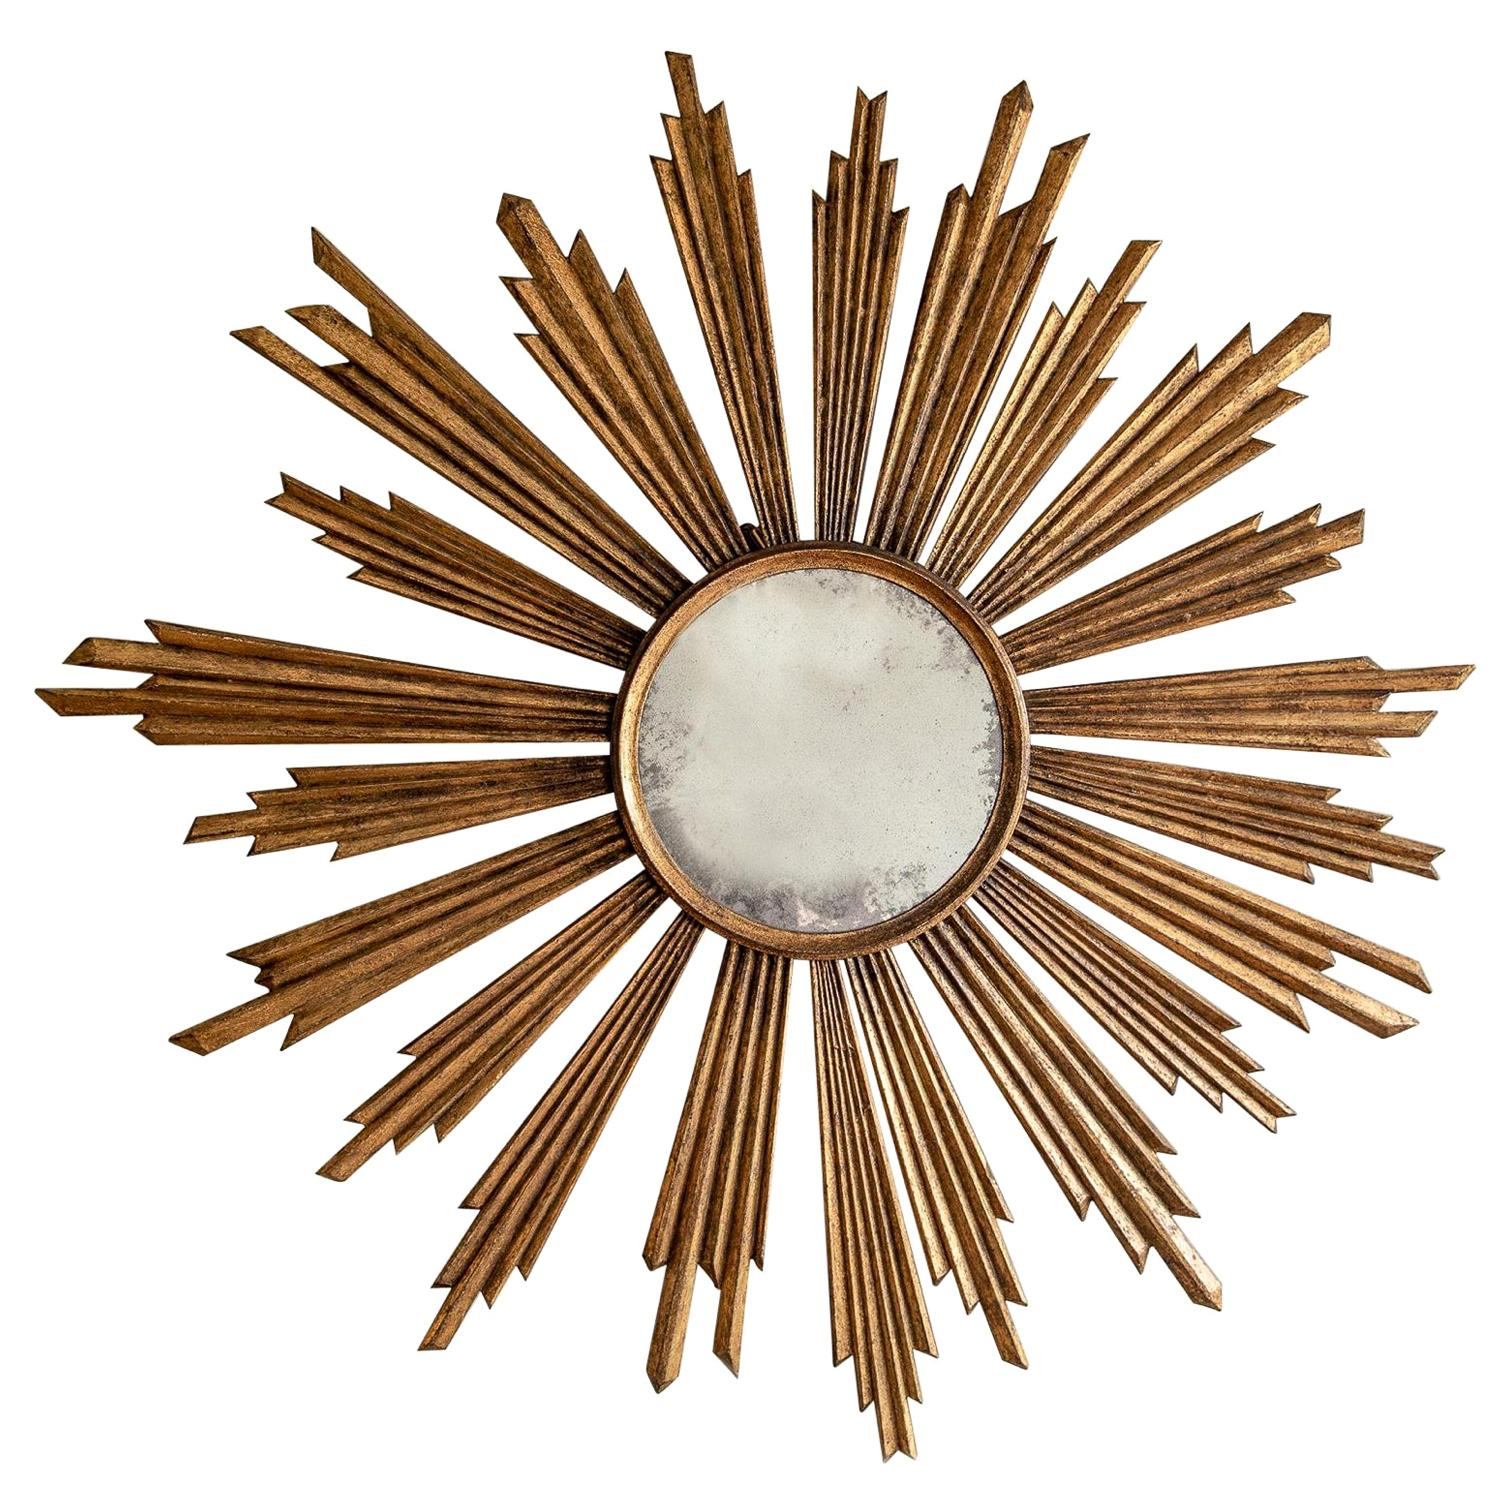 Bespoke Grand Scale Starburst Mirror - hand crafted and customised to your size